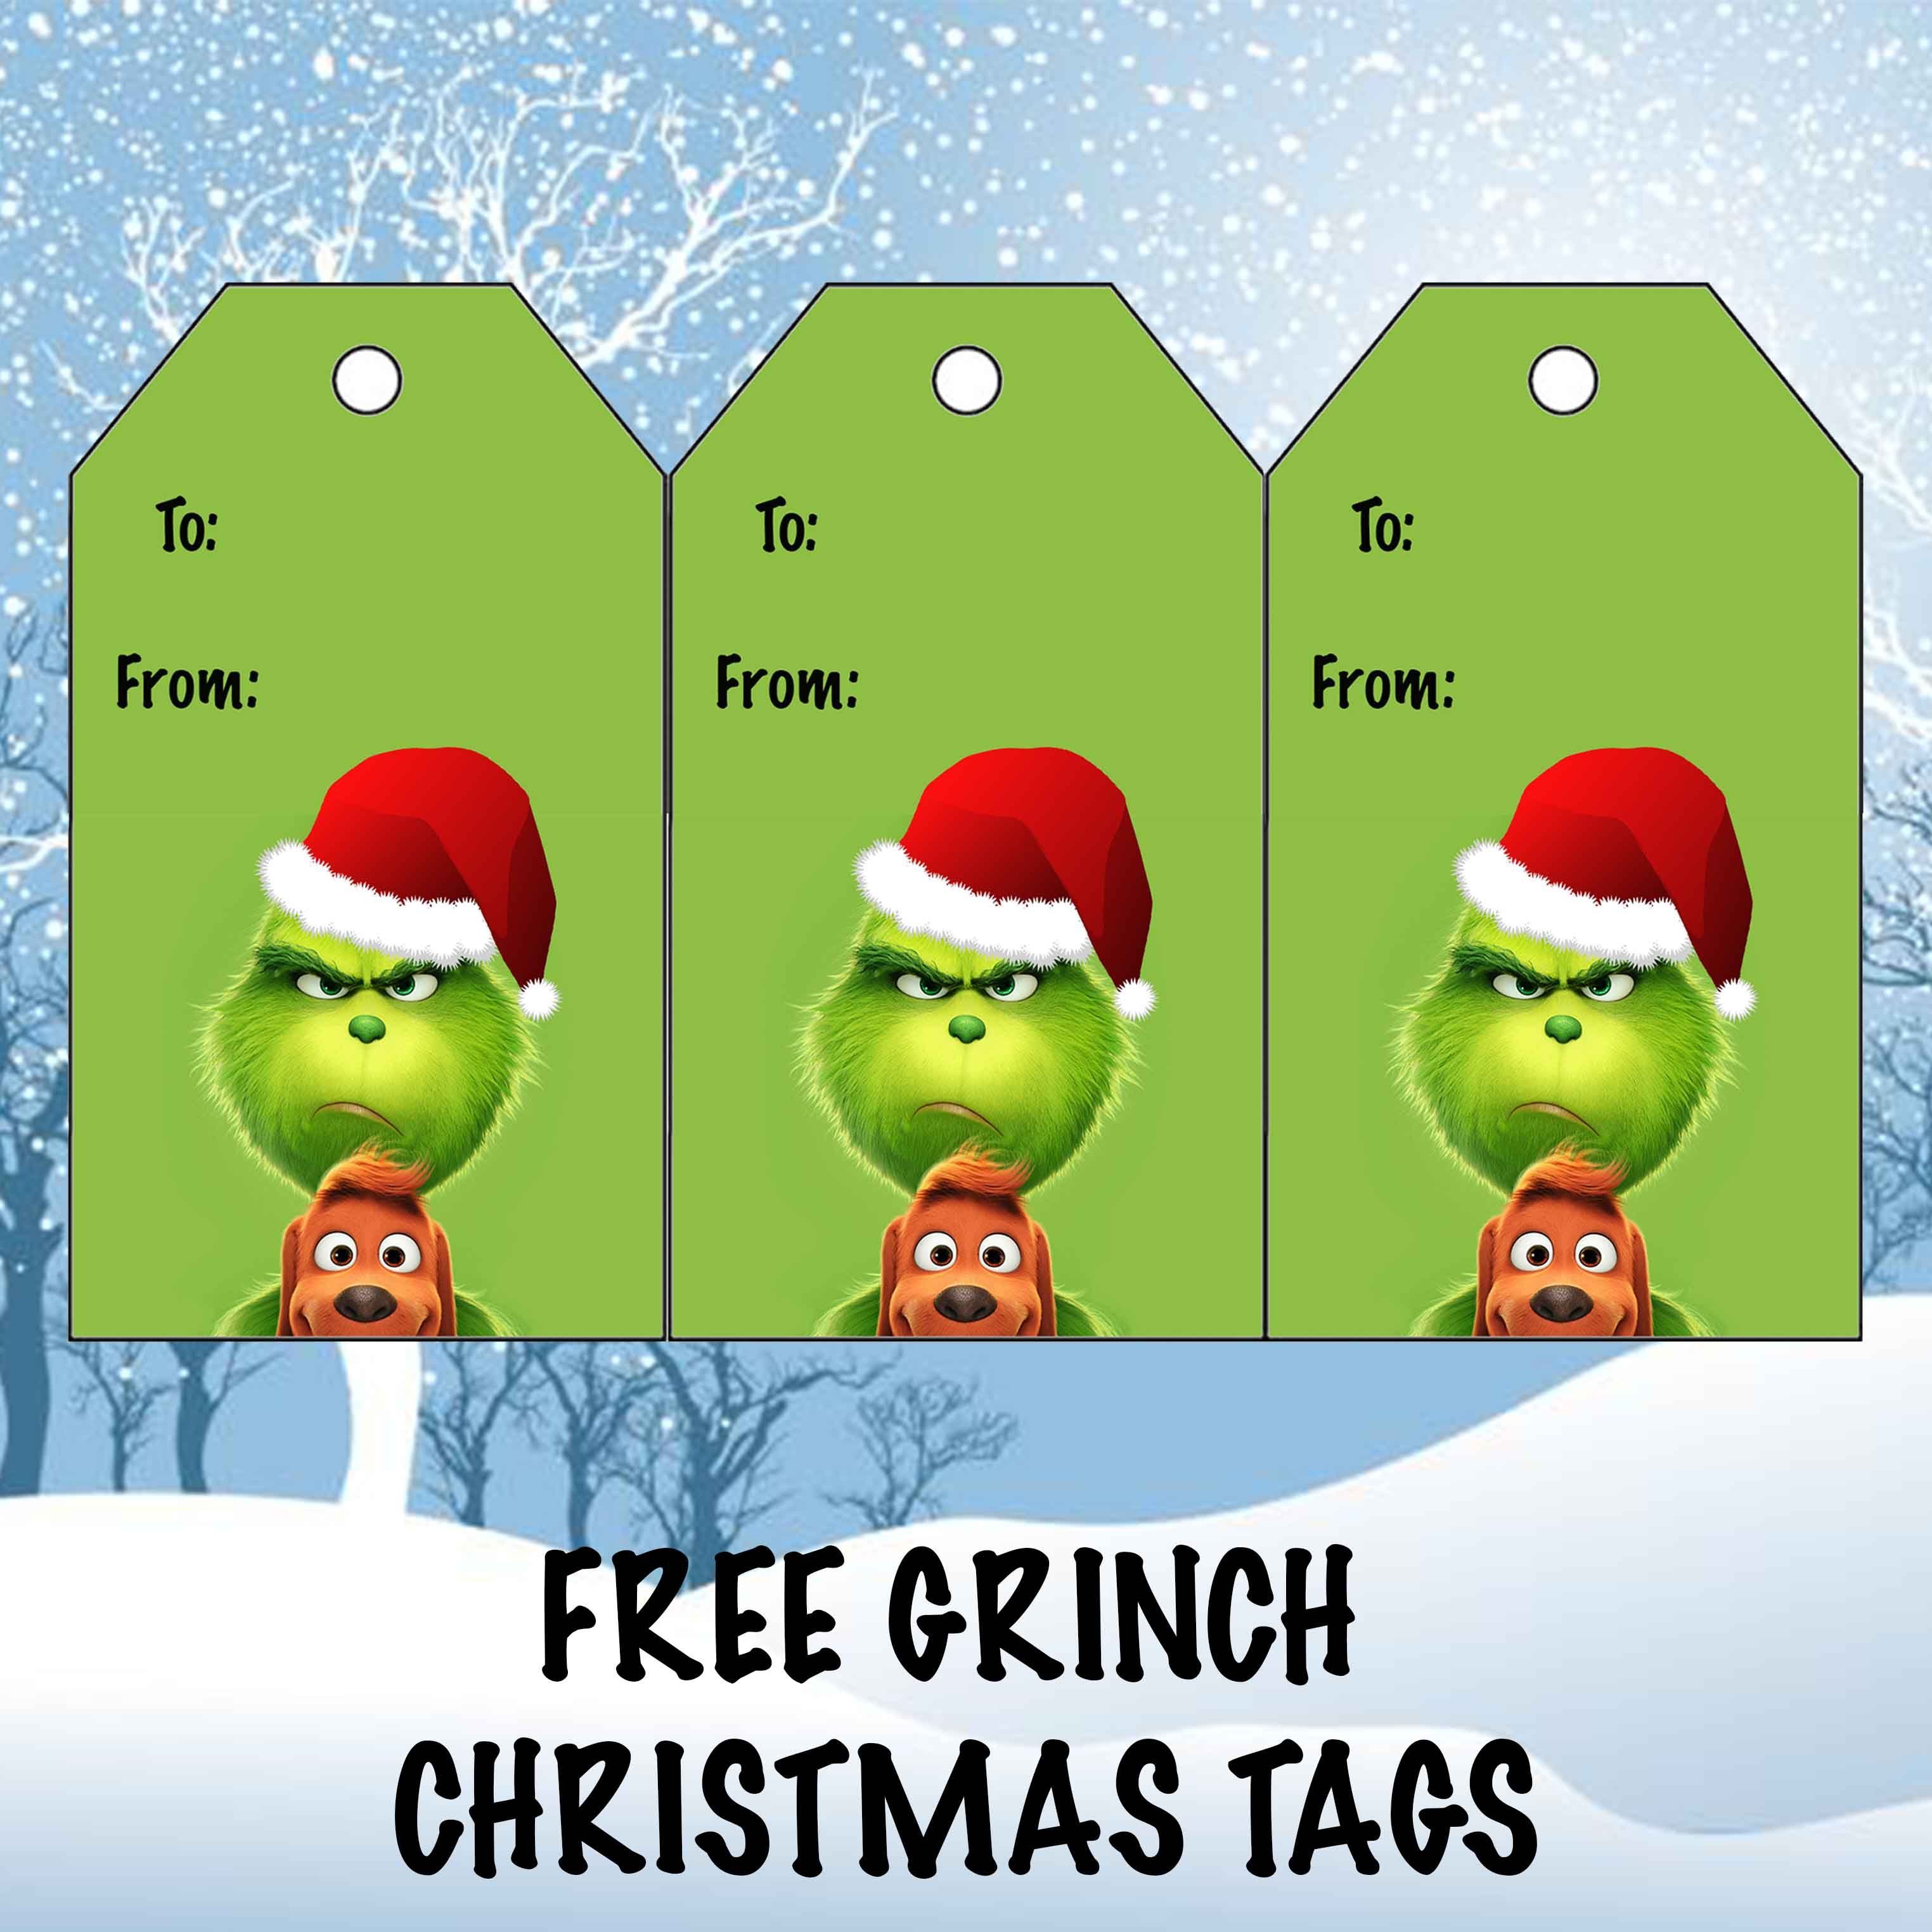 The Grinch Christmas T Tags